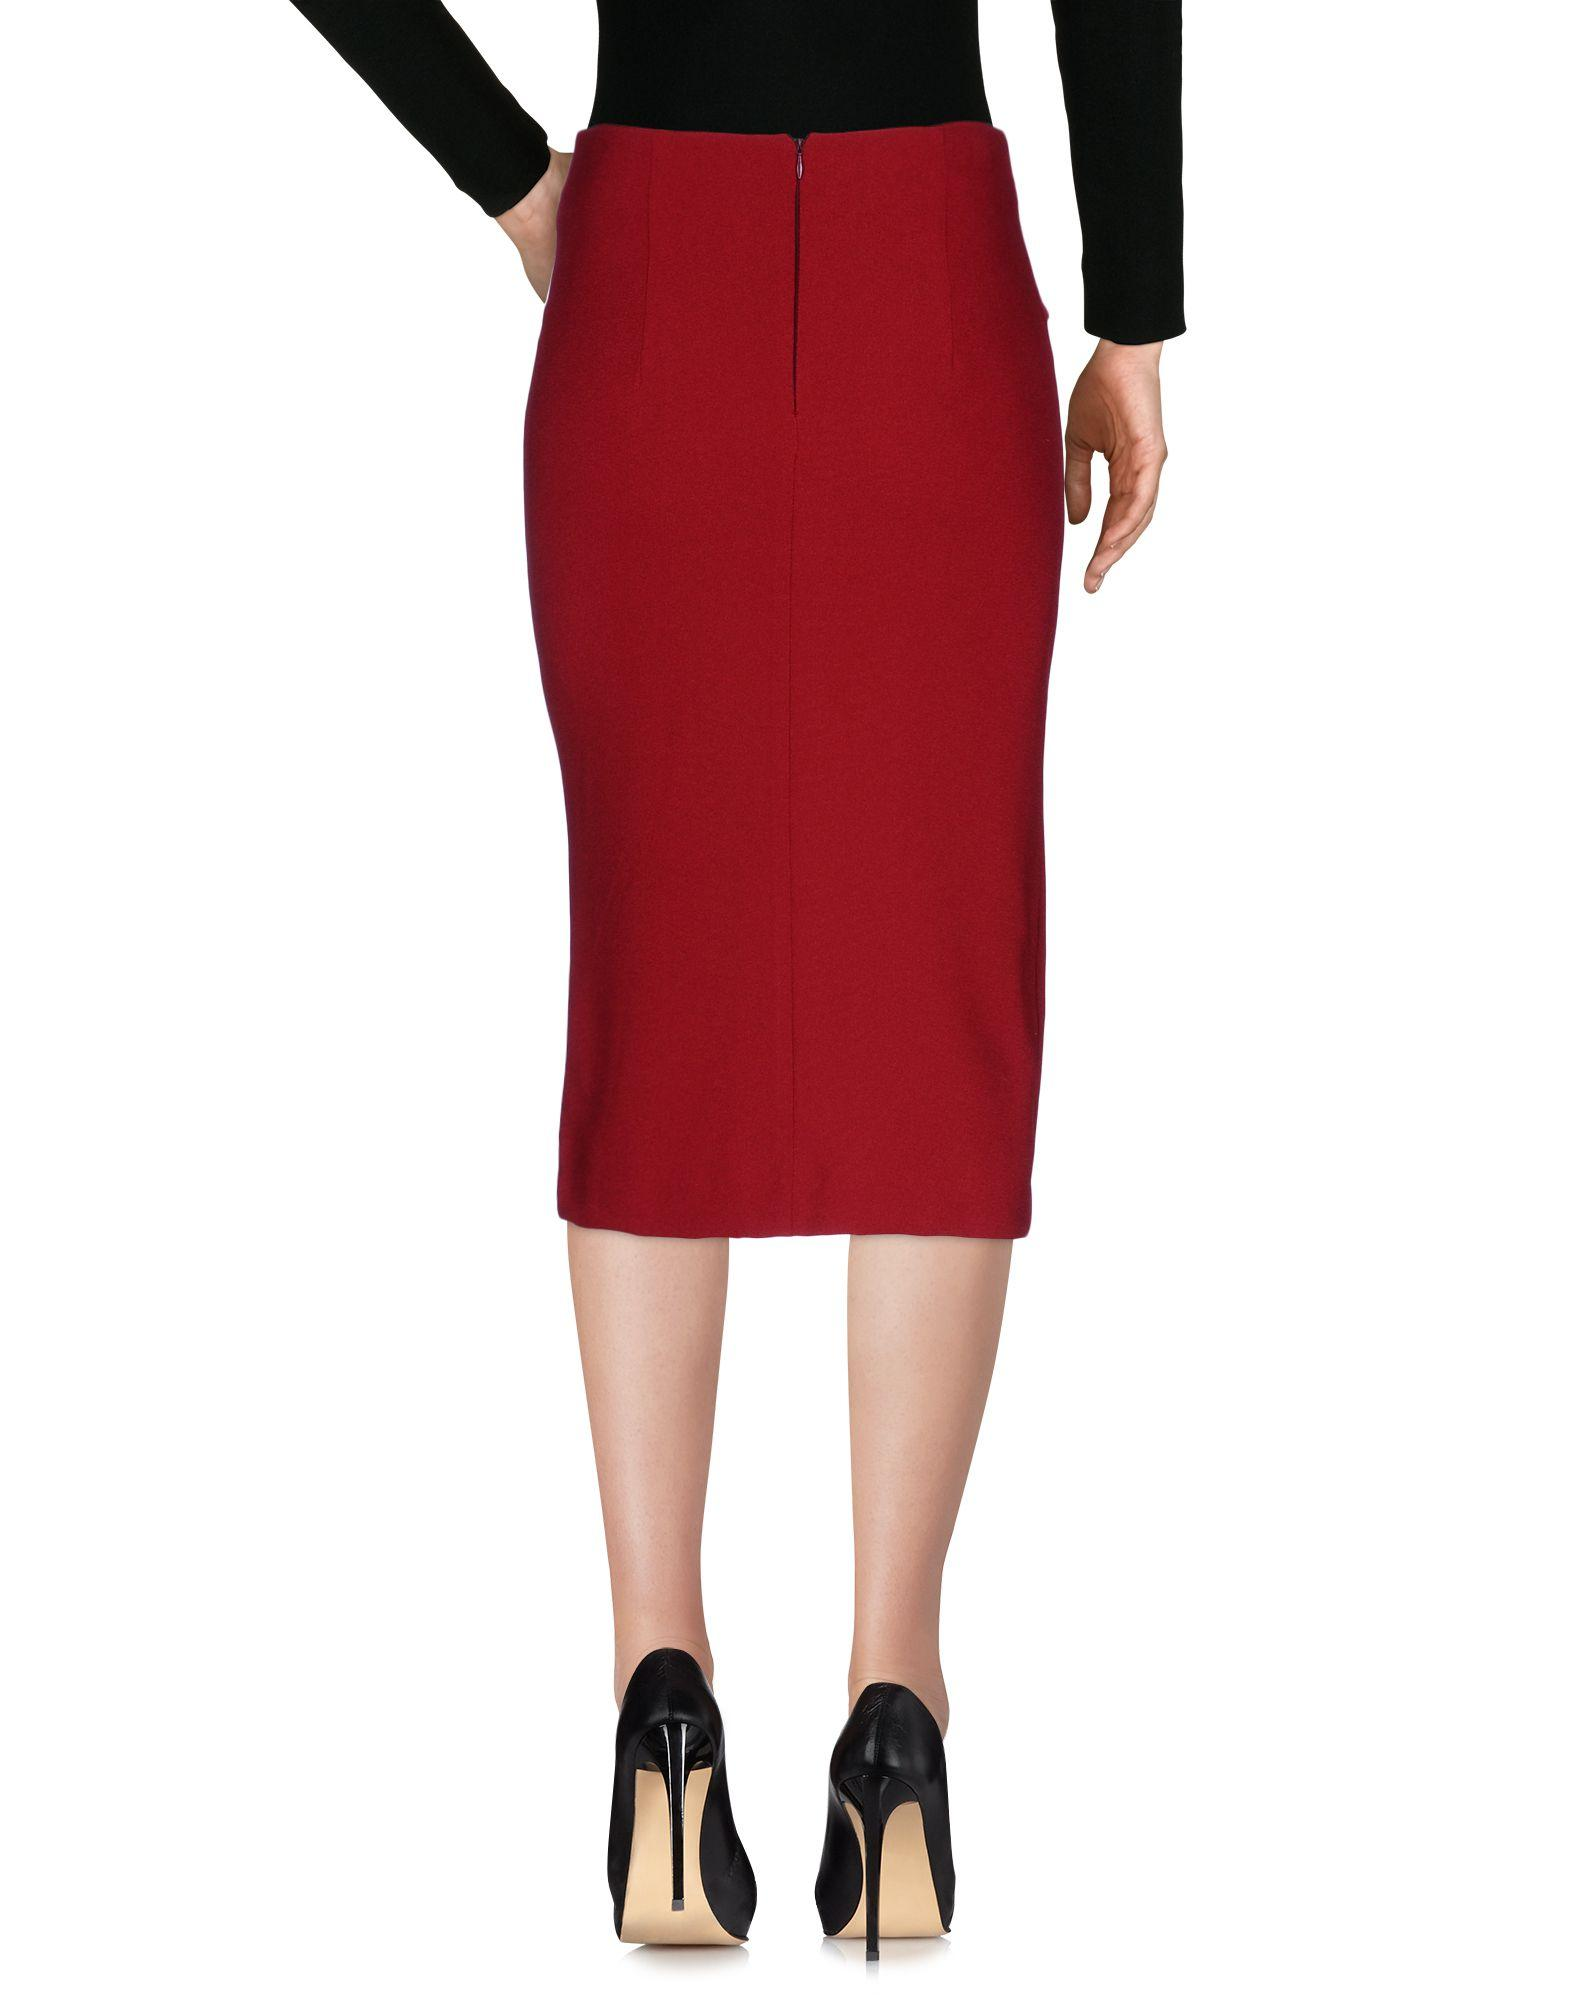 Vicolo 3 4 length skirt in red lyst for 20 34 35 dress shirts